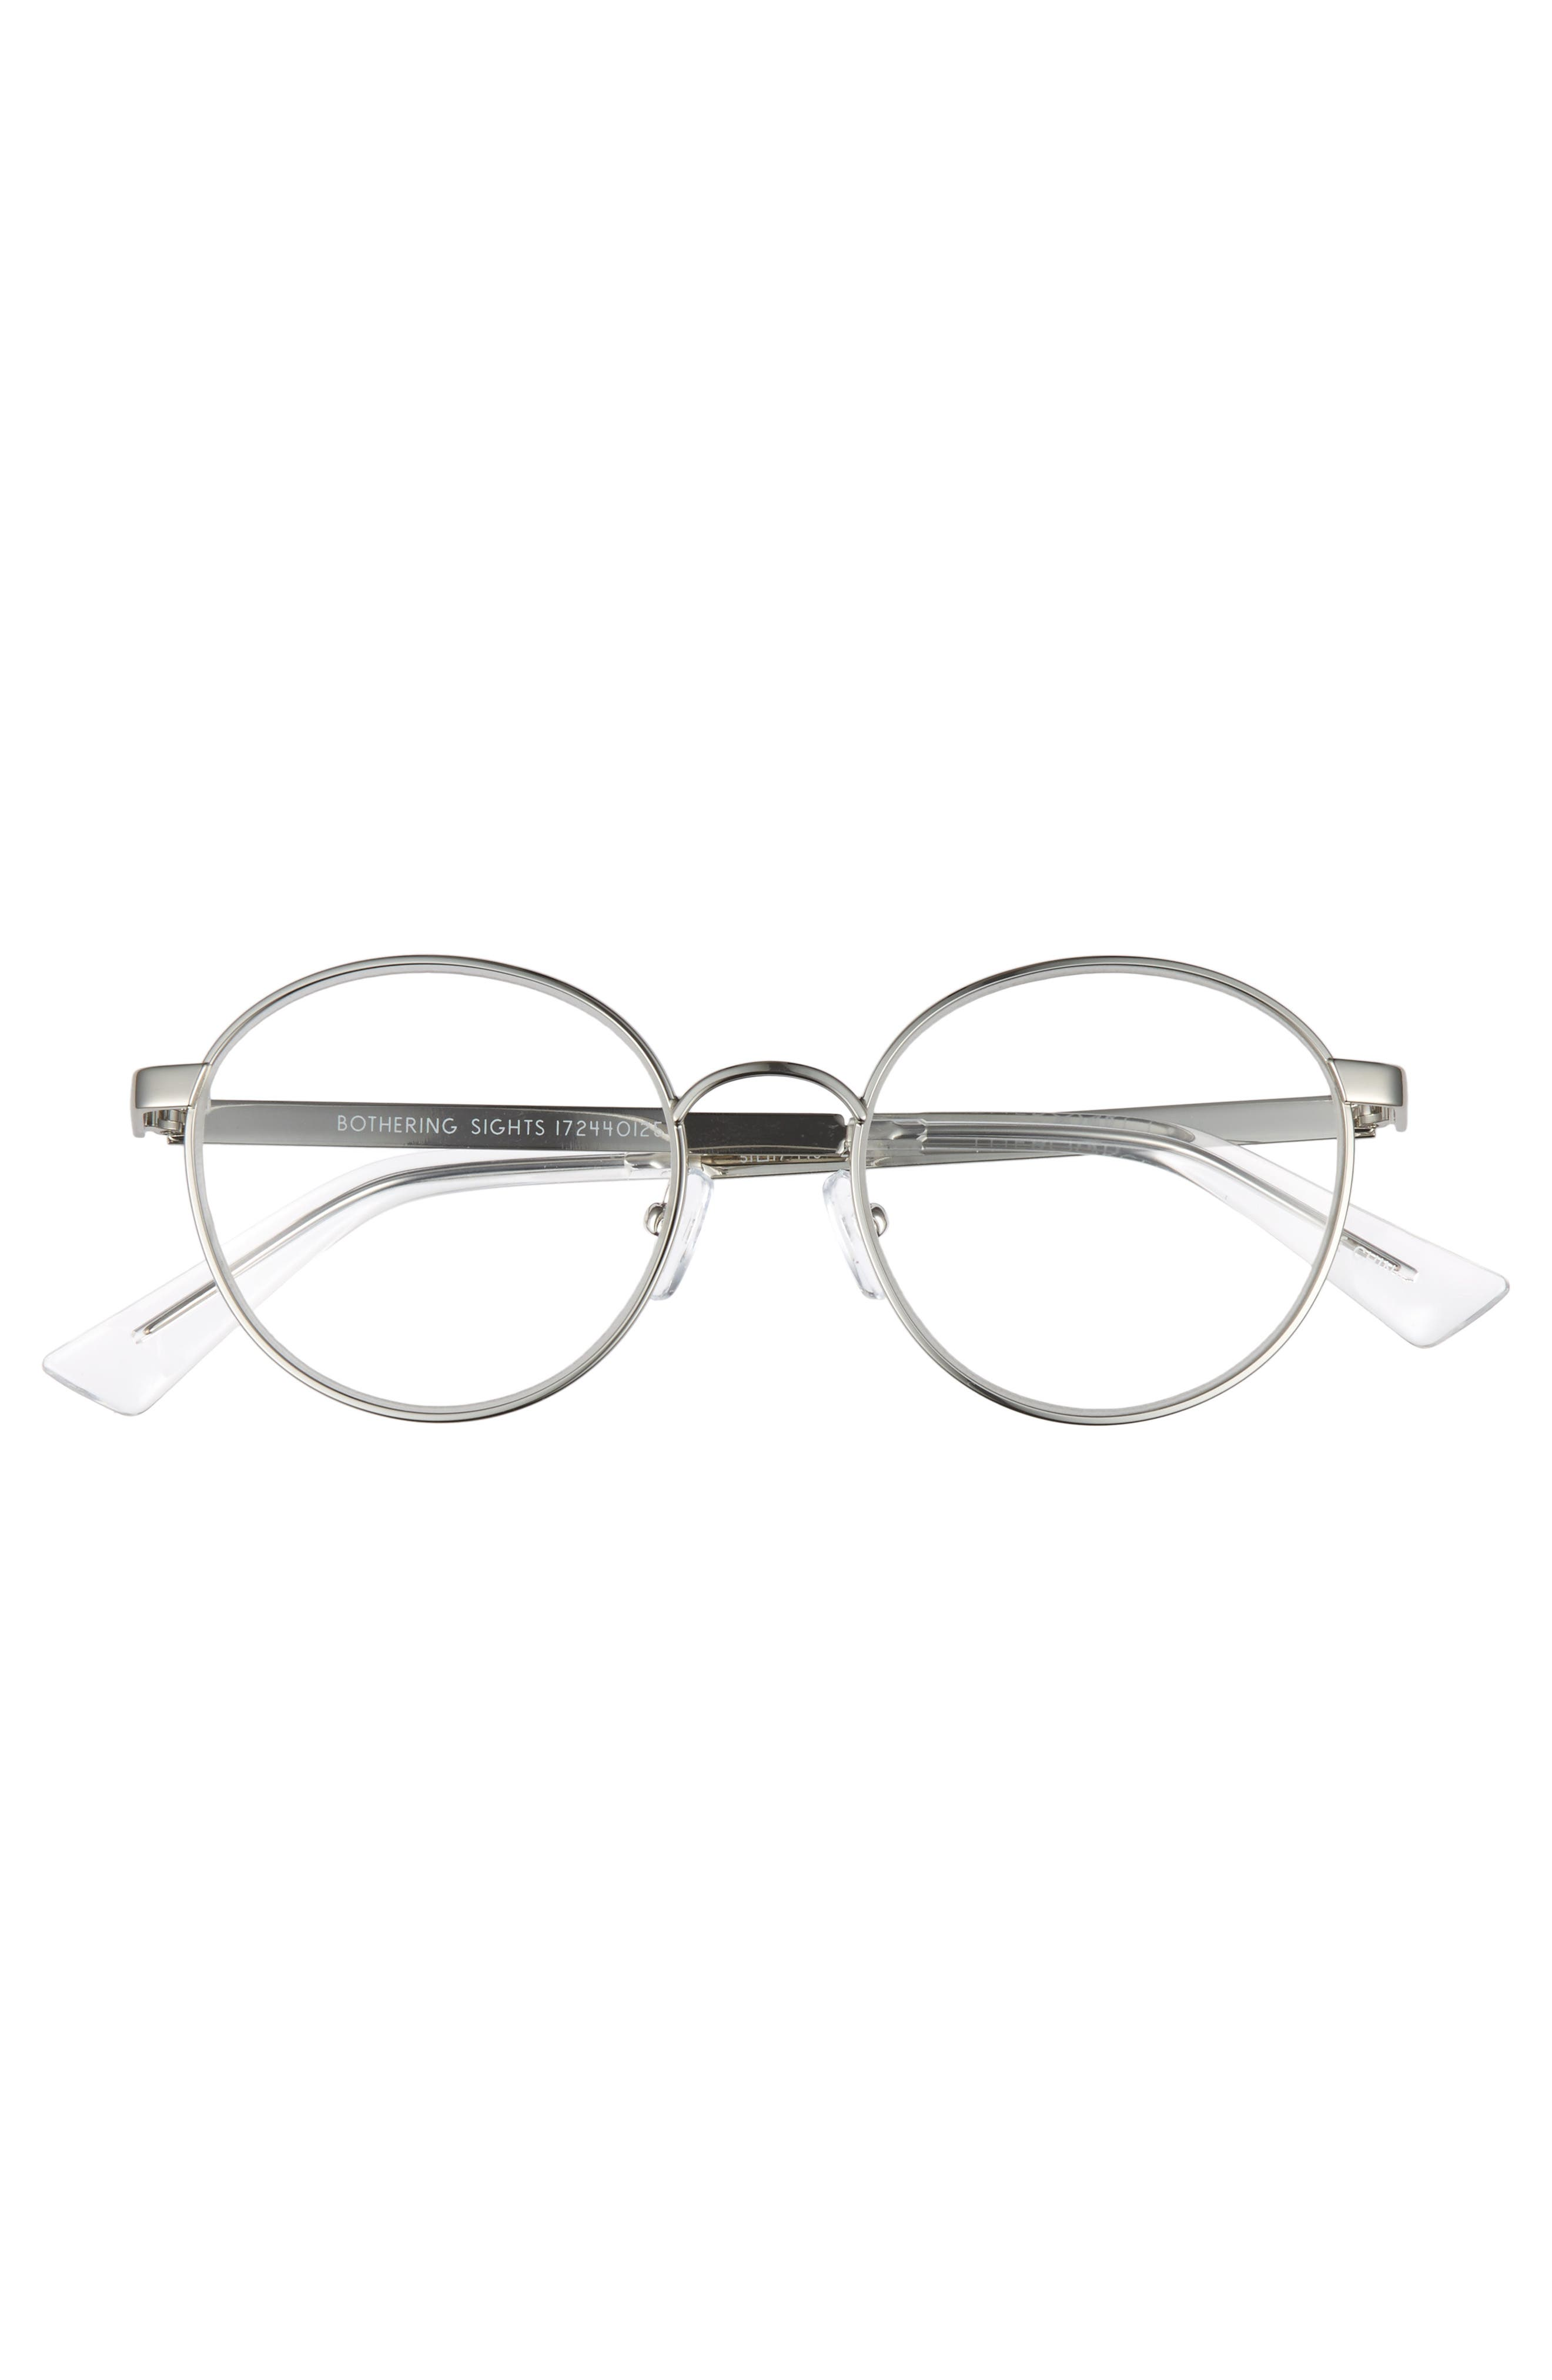 Bothering Sights 51mm Reading Glasses,                             Alternate thumbnail 3, color,                             Silver/ Cellophane